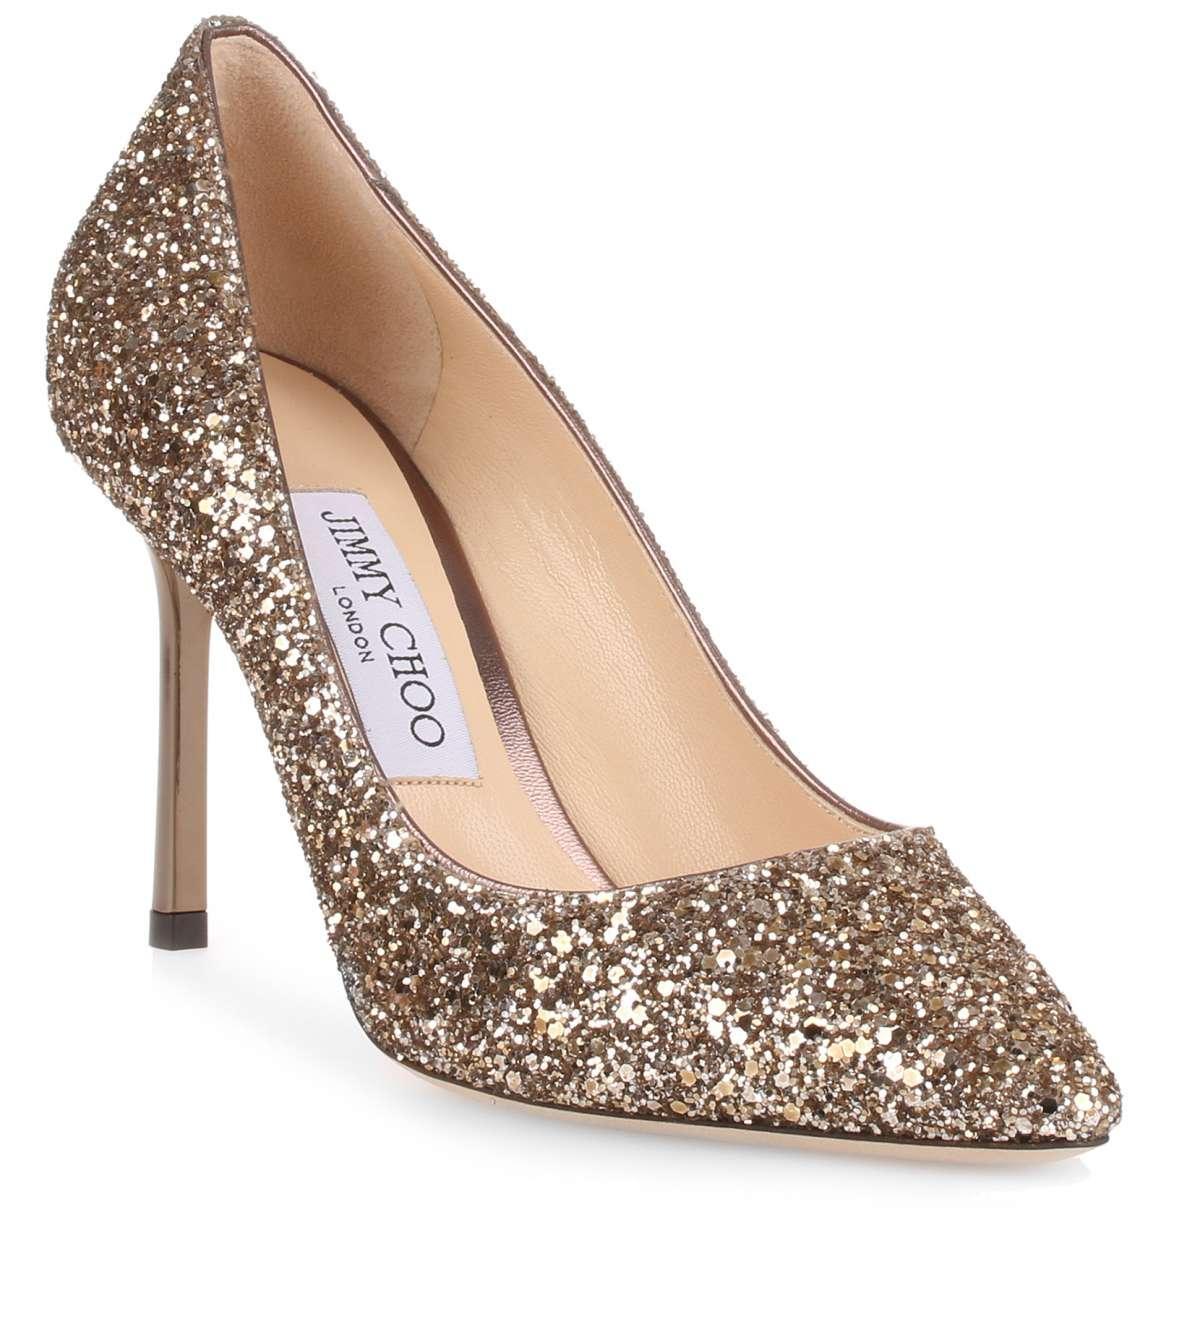 09f7d24819ce98 Gallery. Previously sold at  Savannahs · Women s Jimmy Choo Glitter ...